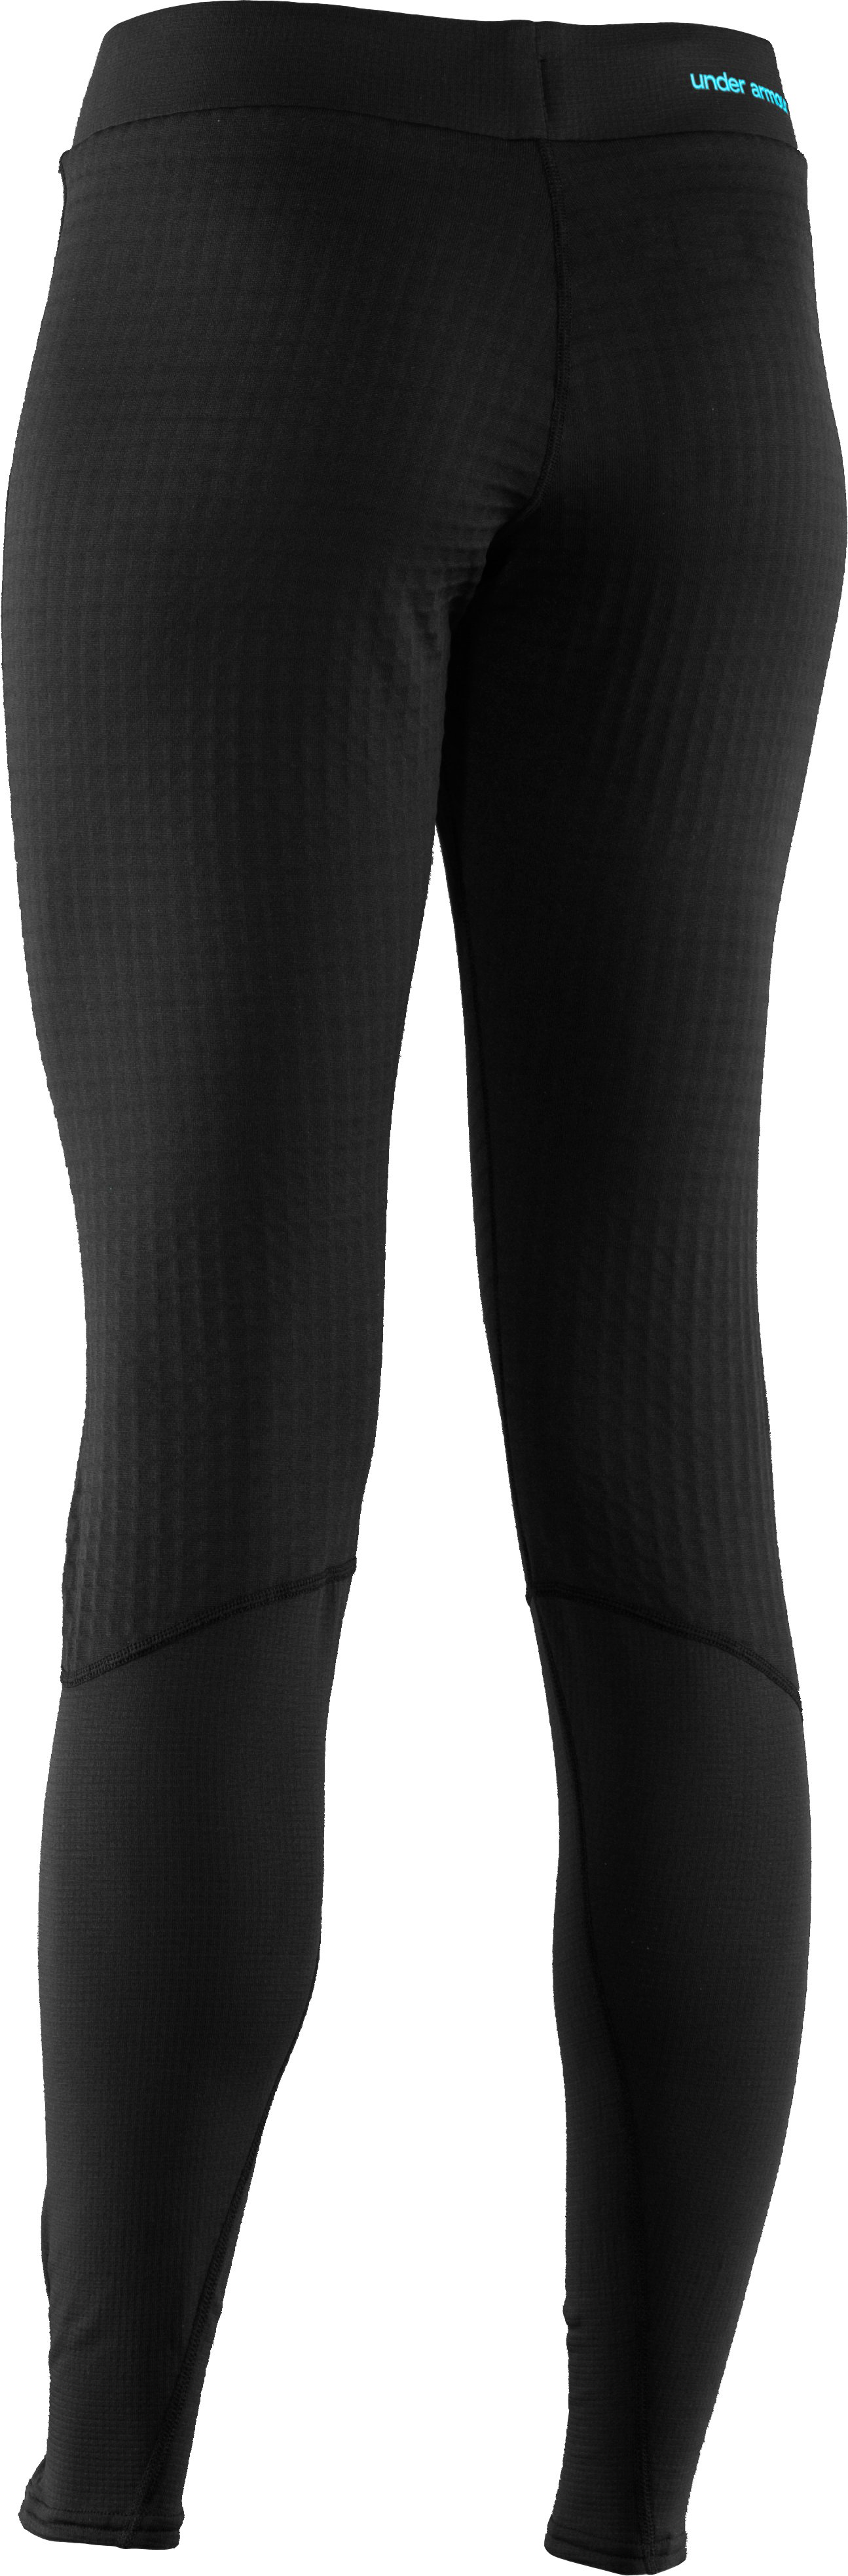 Women's UA Base™ 4.0 Leggings, Black